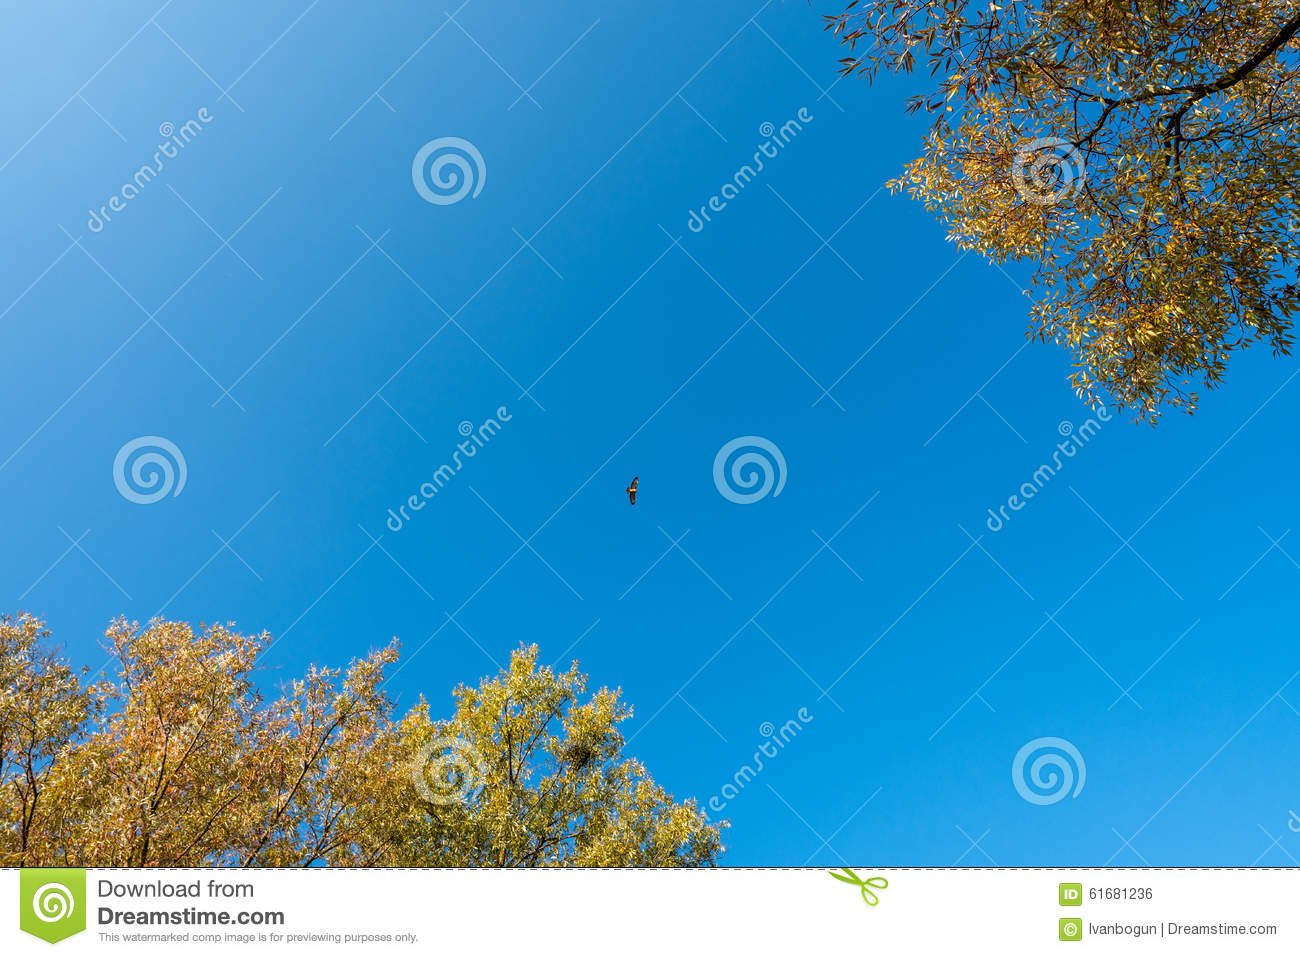 Falcon Fly Stock Photo - Image: 61681236